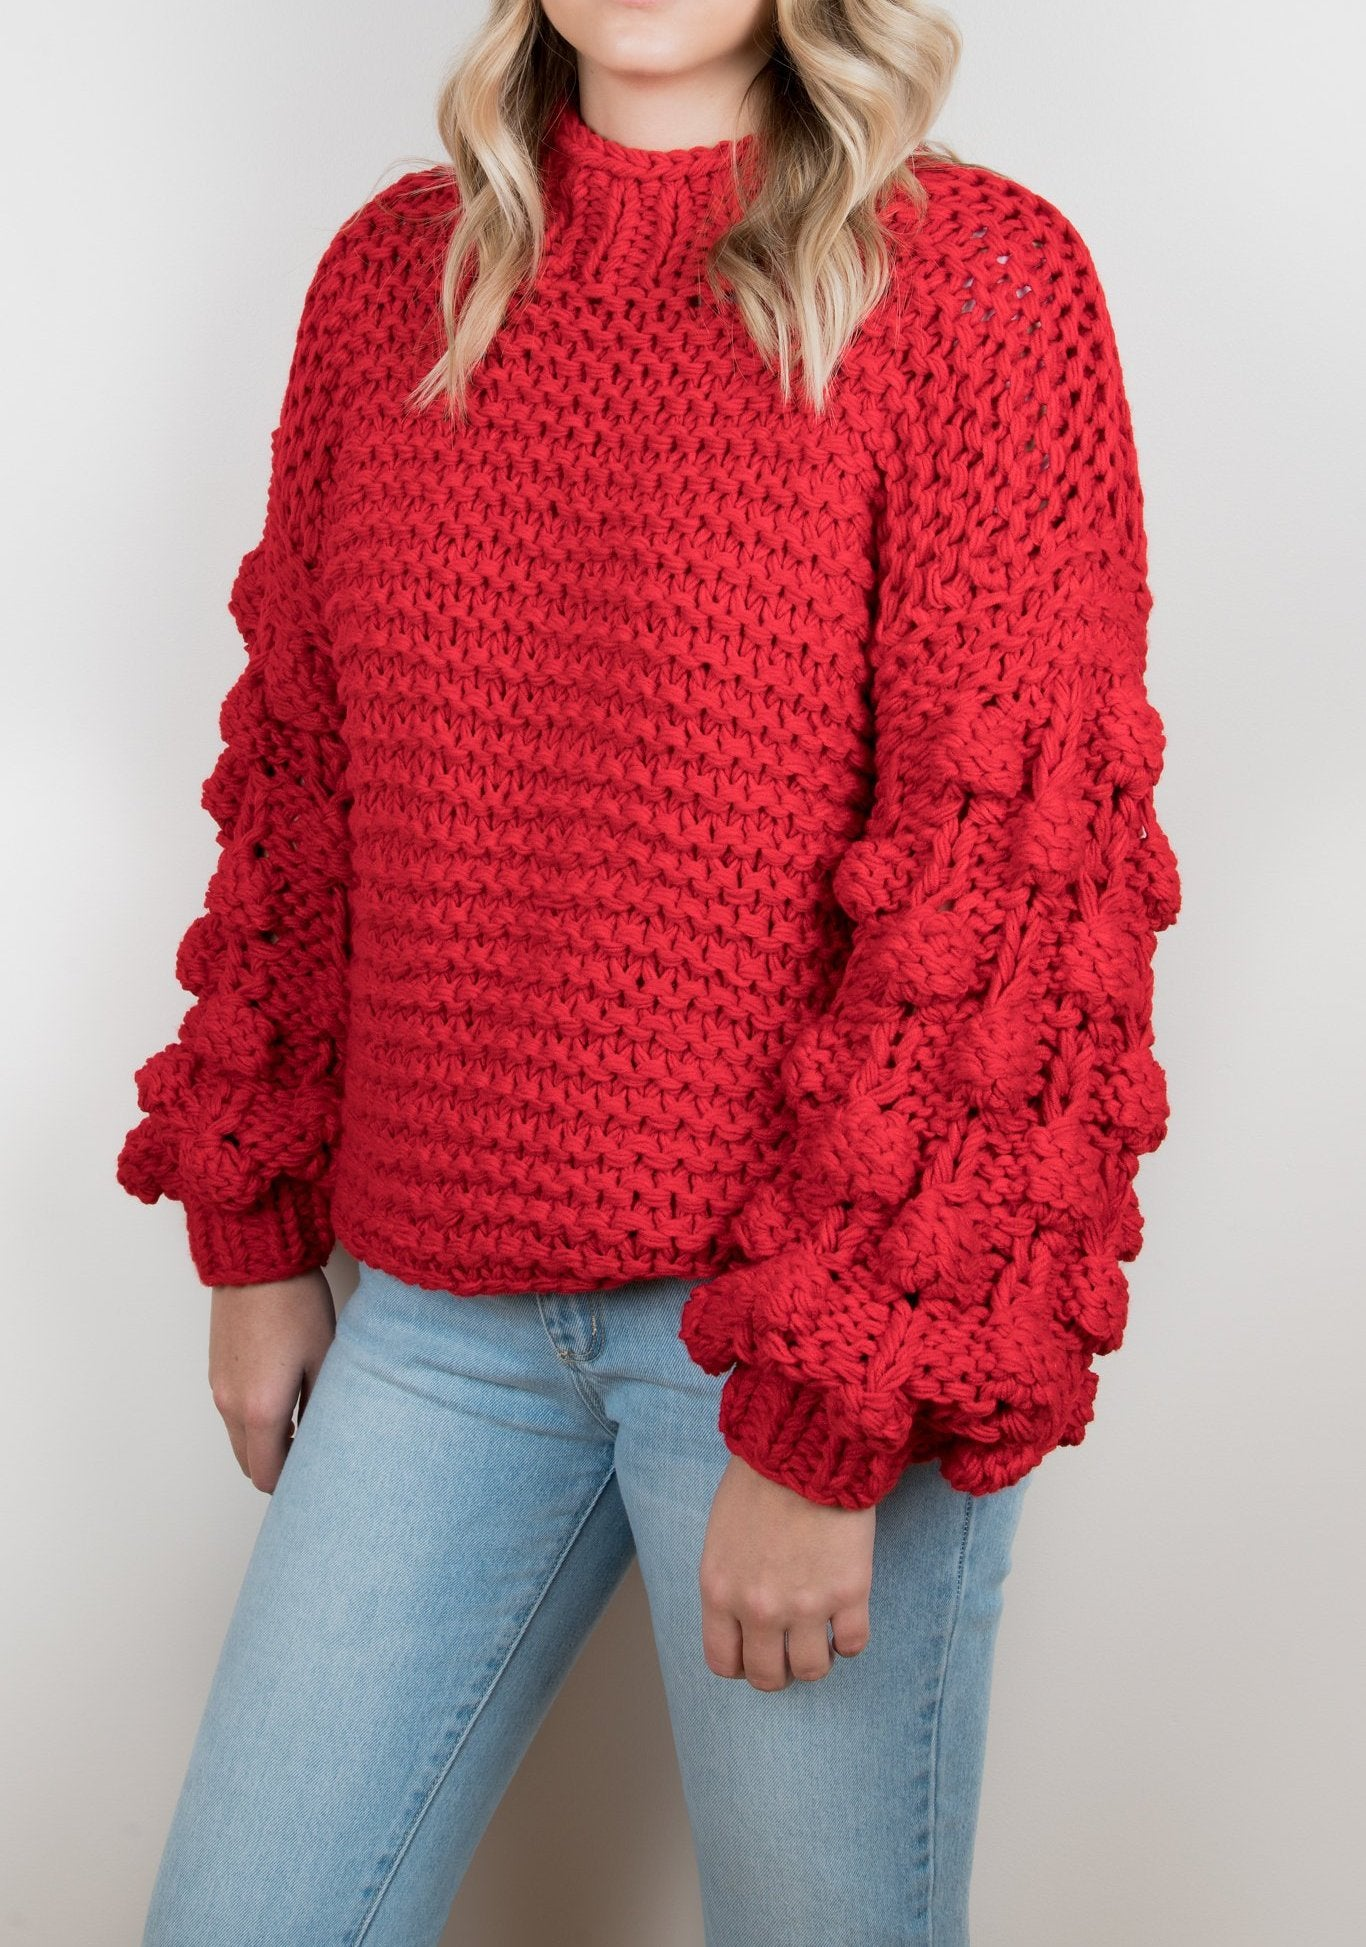 Bubble Knit Sweater